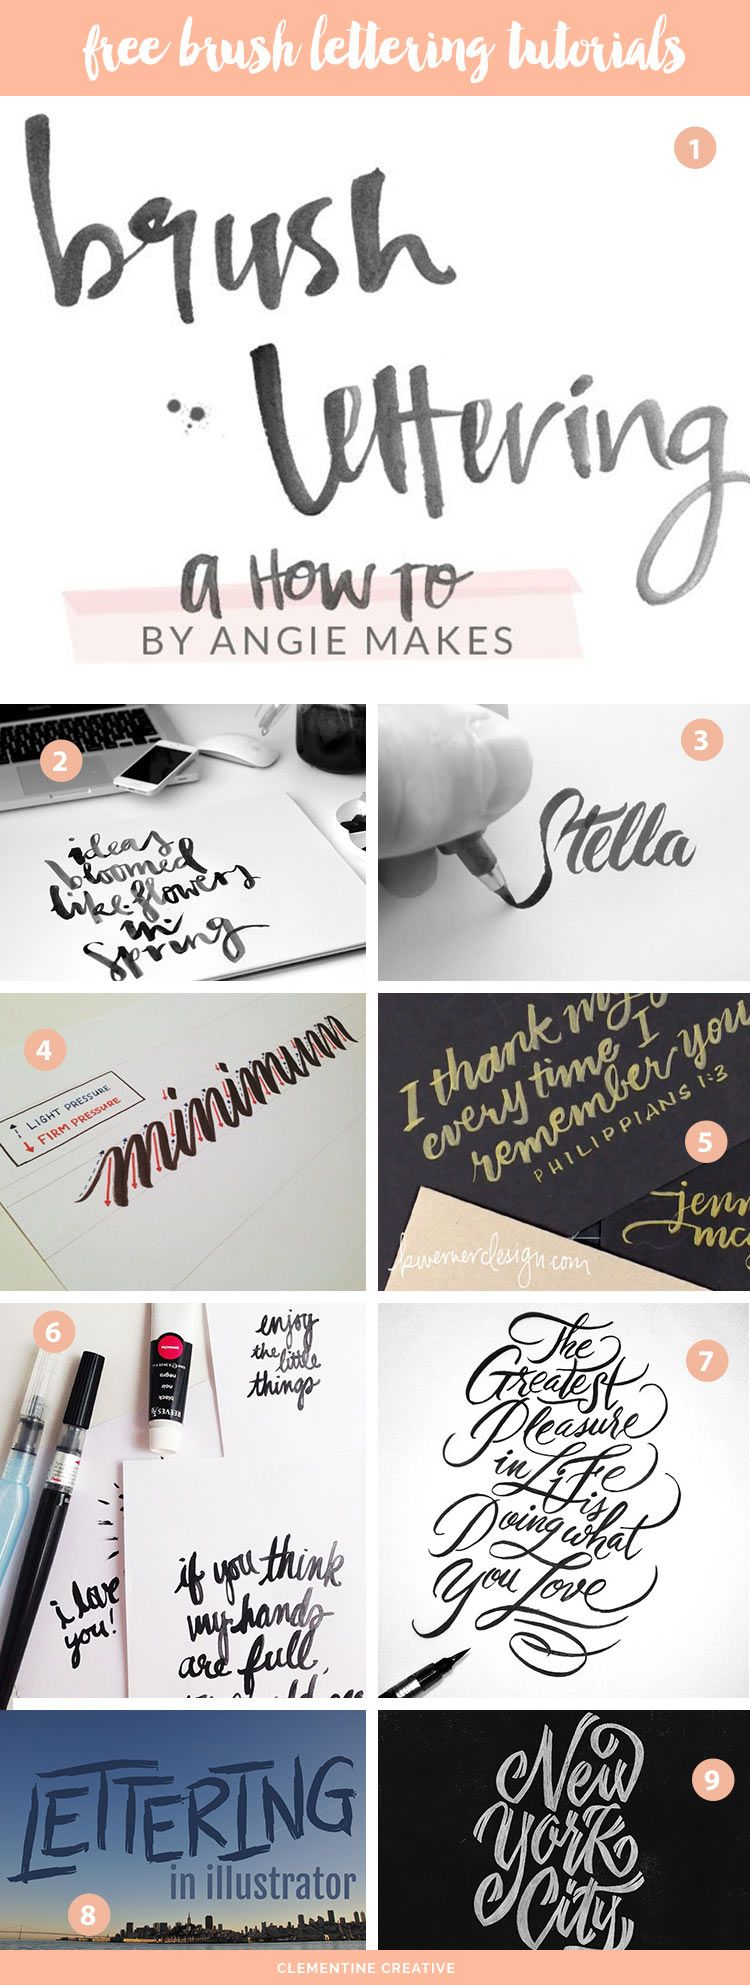 How to make modern brush lettering tutorial